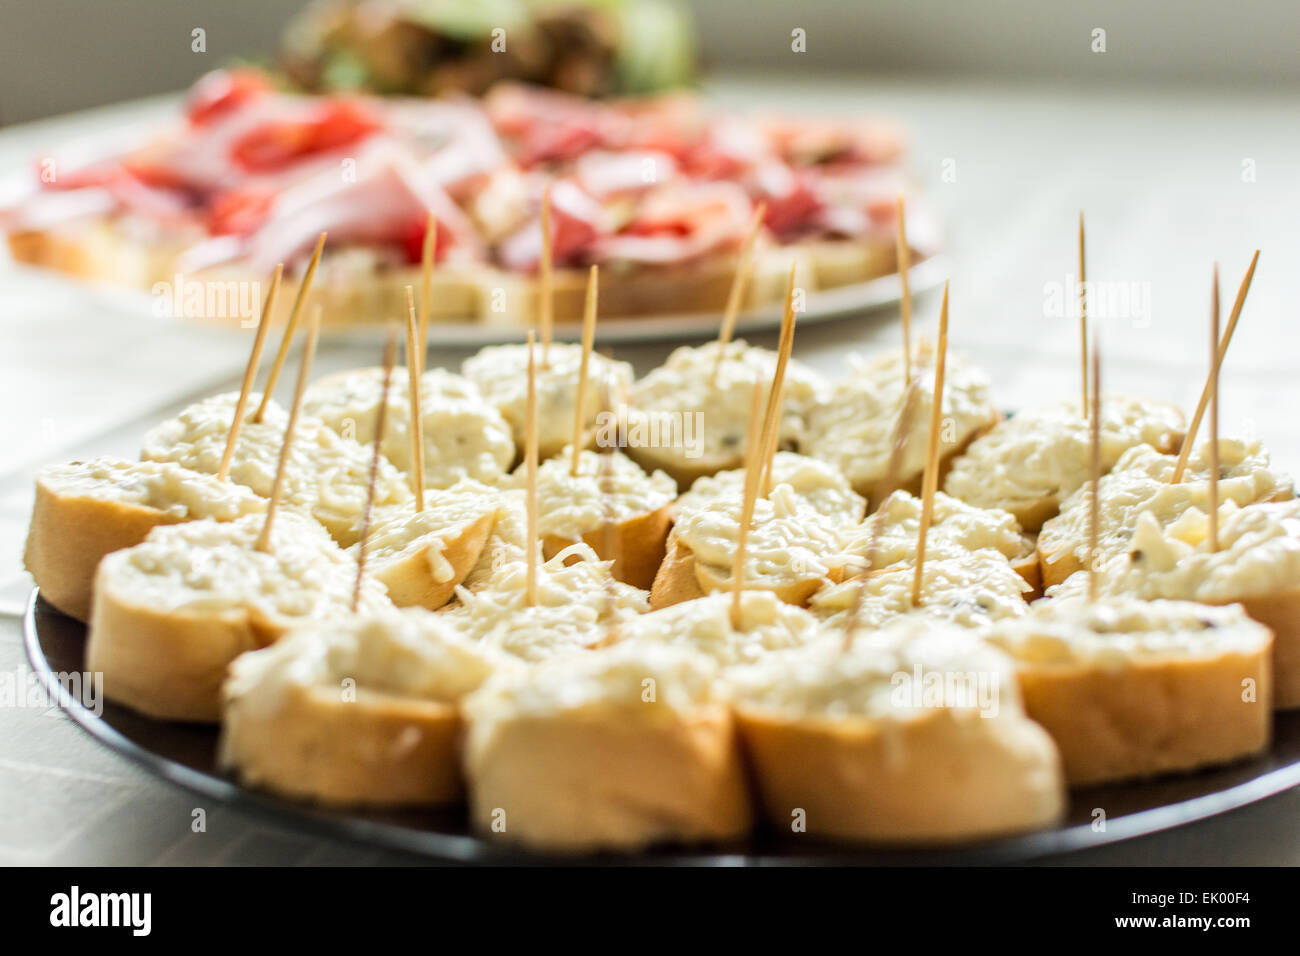 Canapes of garlic and cheese on black plate - Stock Image